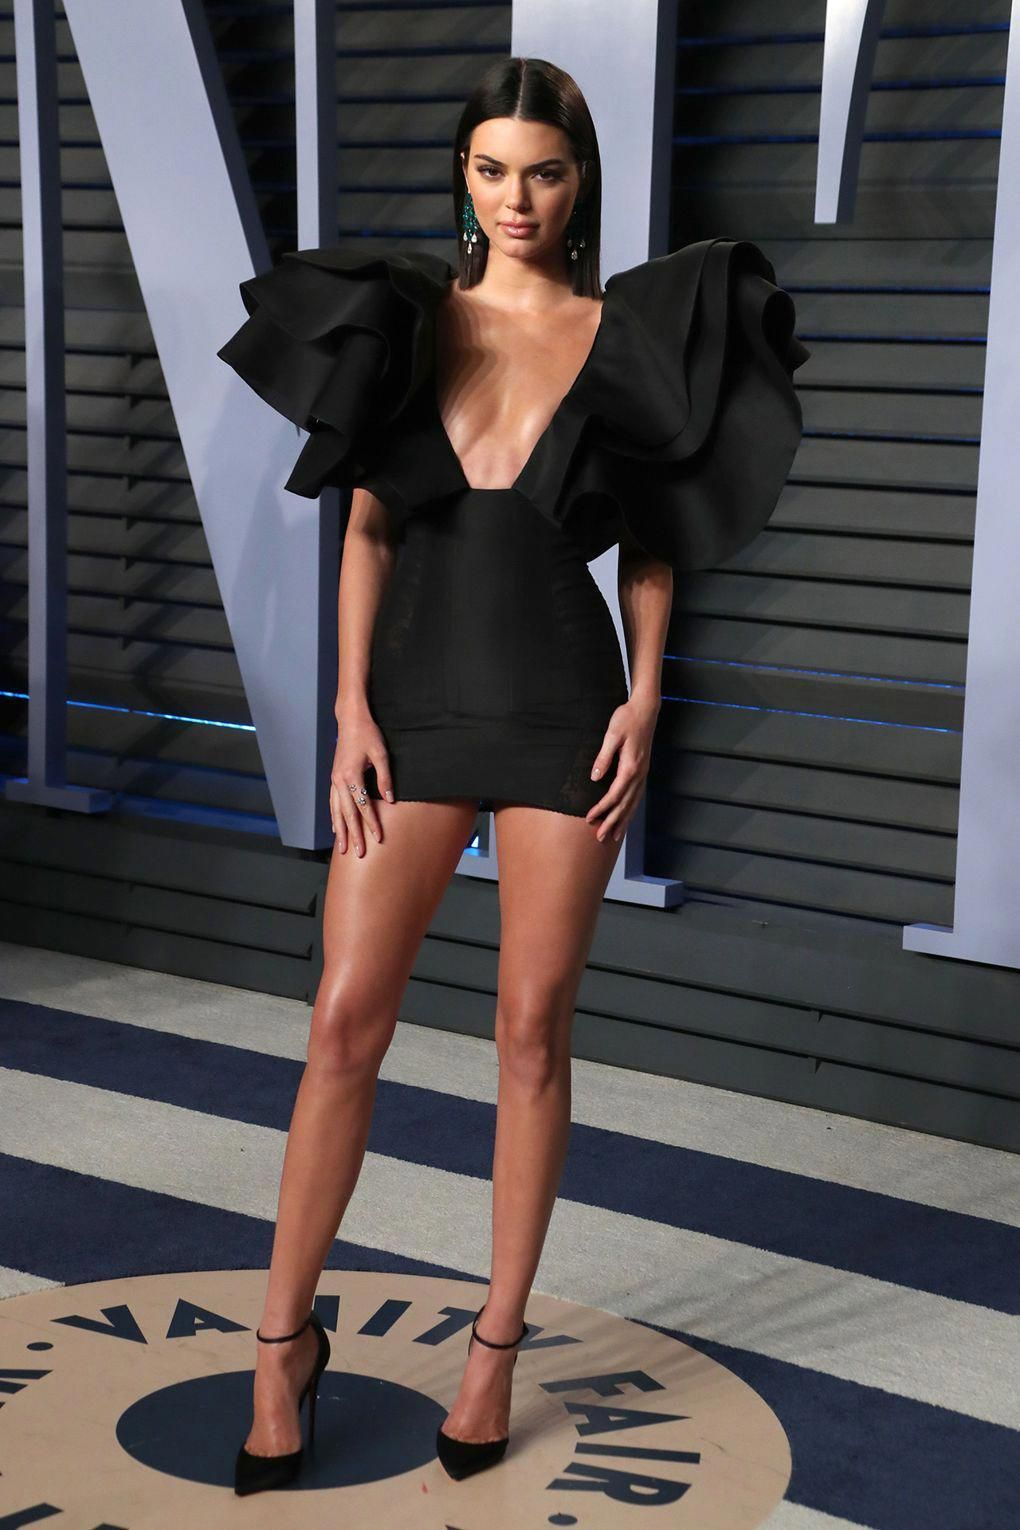 Kendall Jenner In Azzaro And Christian Louboutin Oscars 2018 The After Party Pictures British V Kendall Jenner Outfits Jenner Outfits Super Short Mini Dress [ 1530 x 1020 Pixel ]